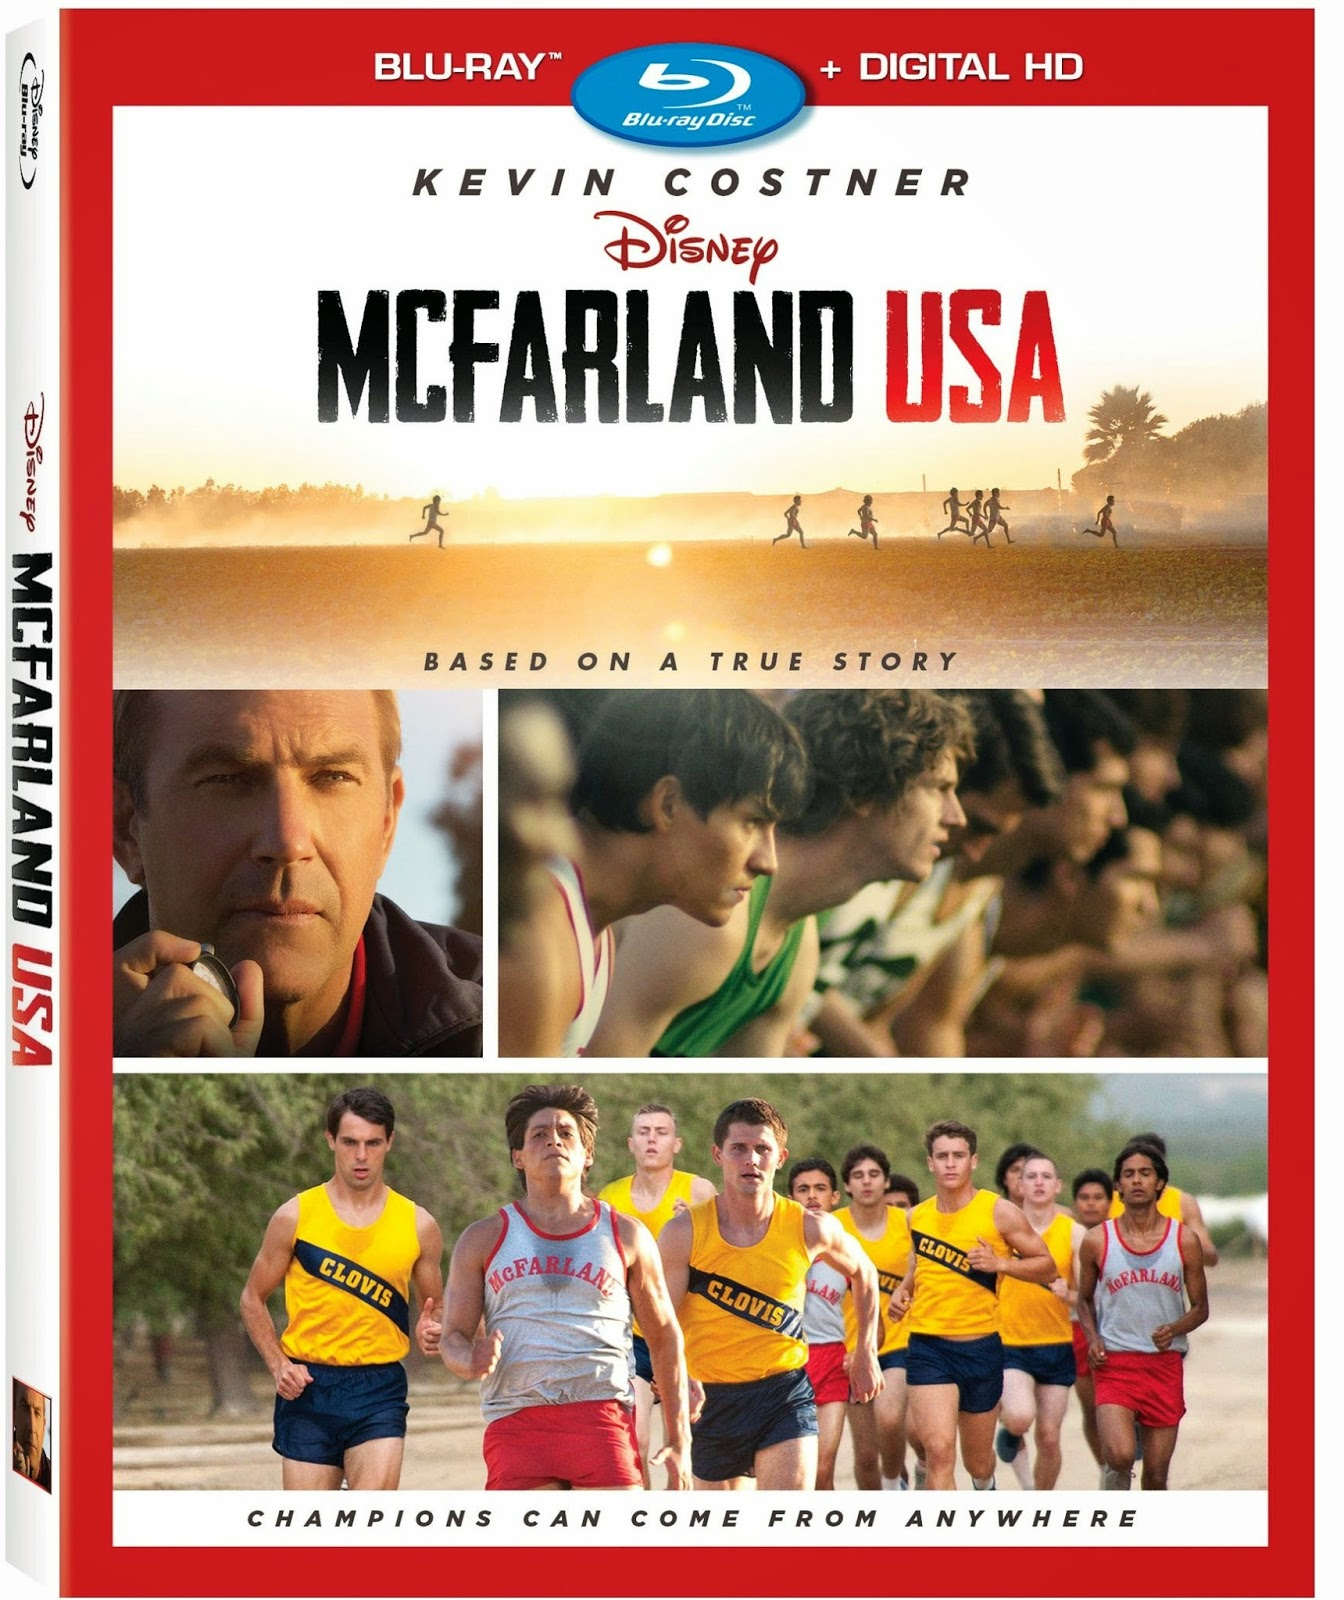 McFarland USA (2015) 1080p BD25 Cover Caratula Bluray